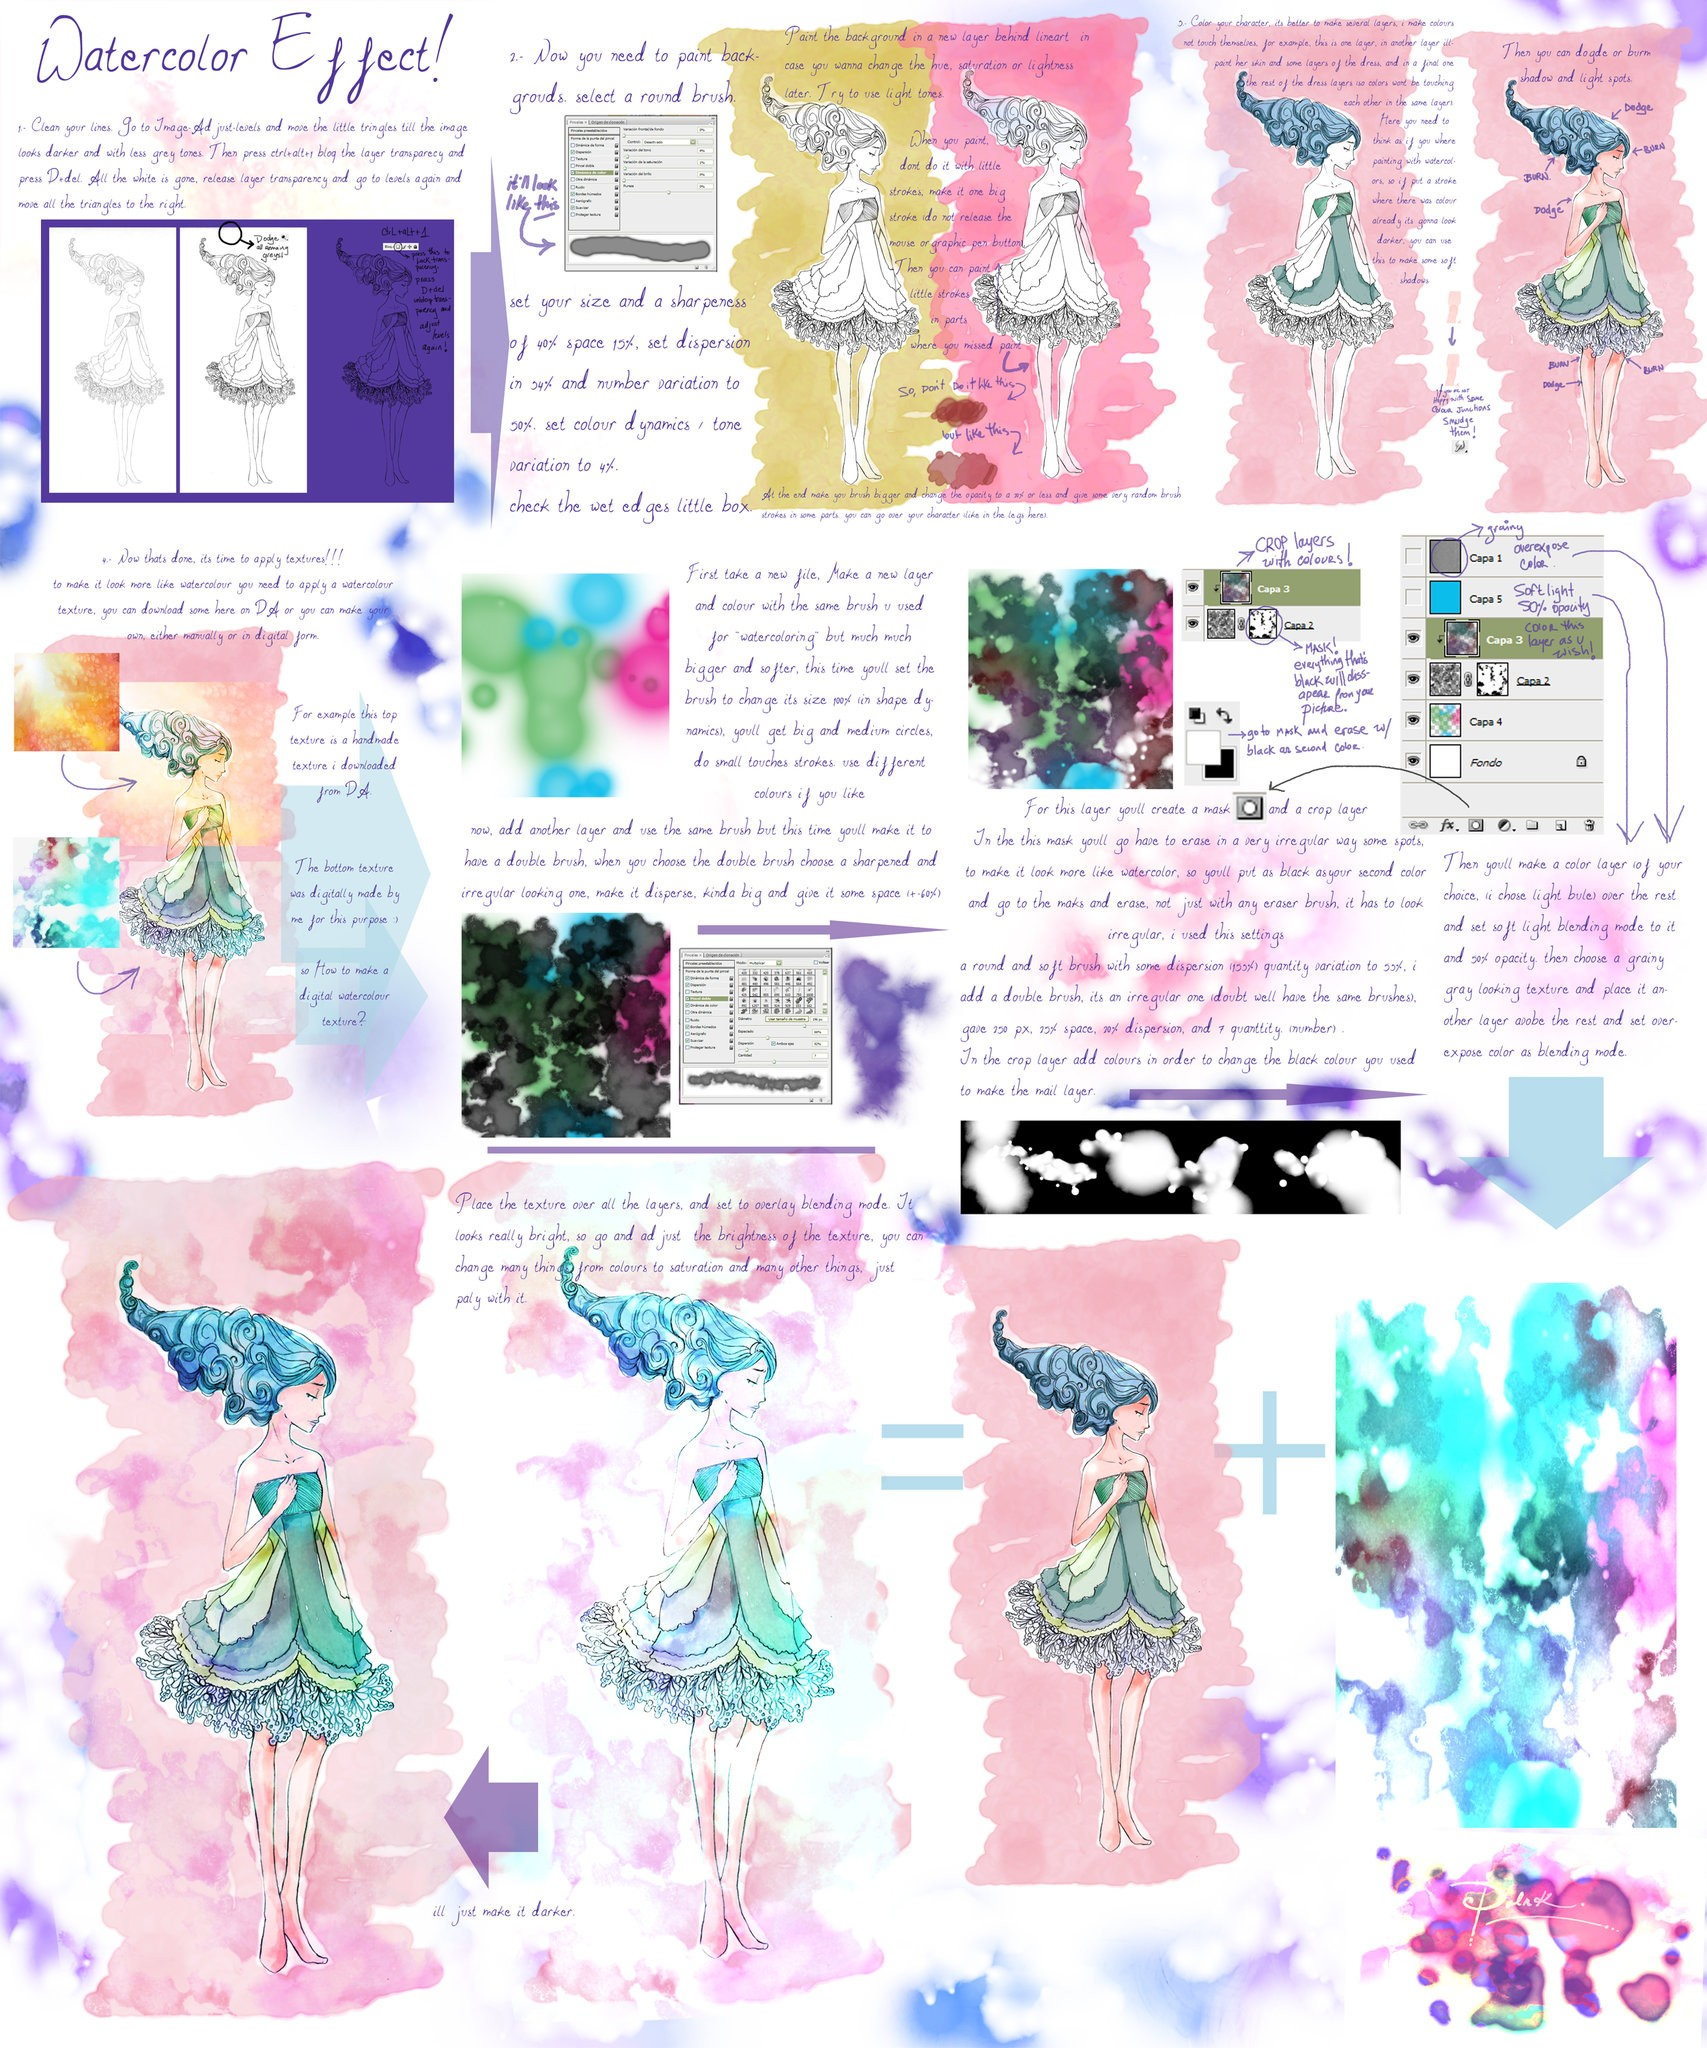 1707x2048 Digital Water Coloring New Watercolor Effect Tutorial By Palnk On